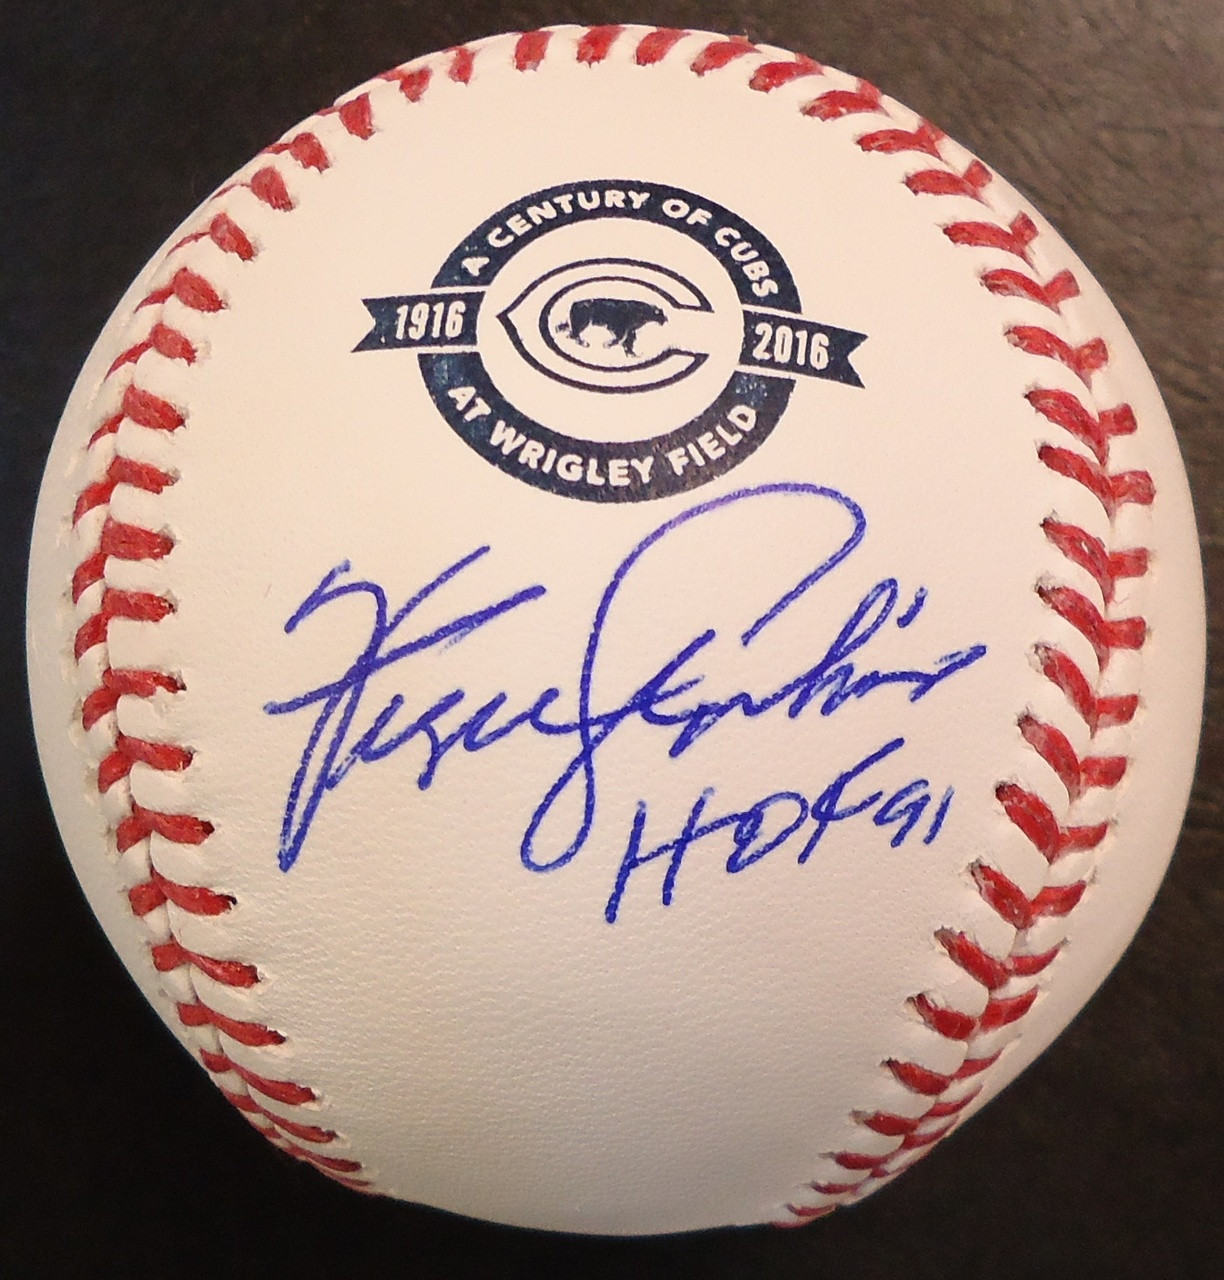 7de65d45387 ... Fergie Jenkins Autographed Baseball - Official Cubs 100 Years Ball  Inscribed